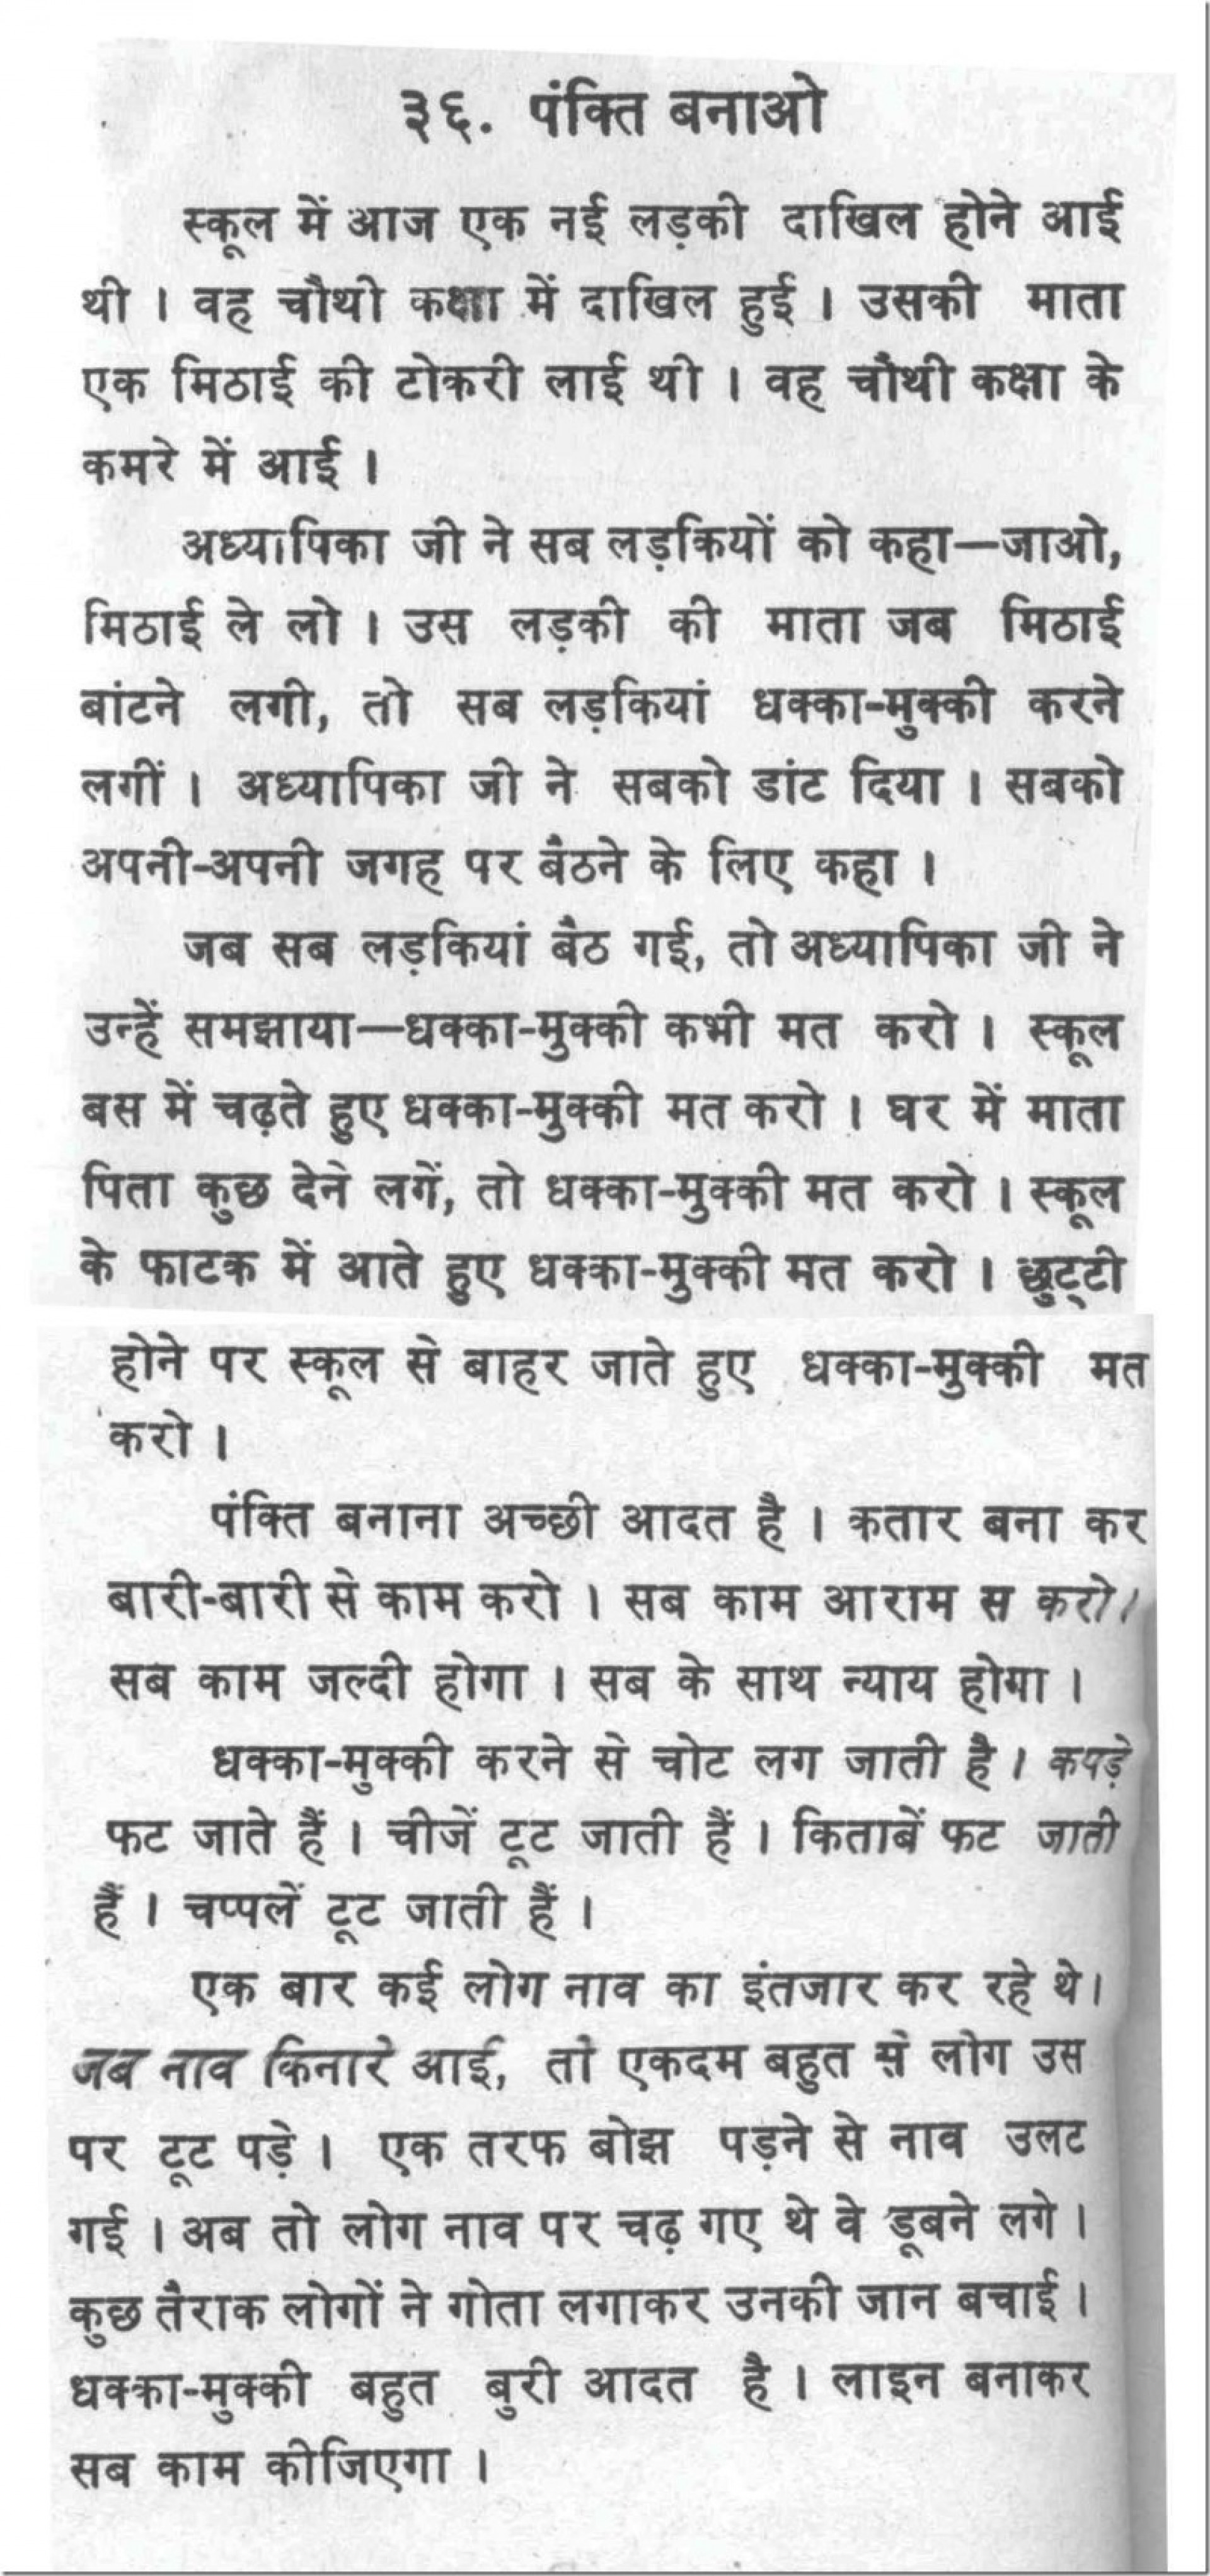 003 10030 Thumbresize8002c1704 Good Habits Essay In Hindi Exceptional Bad Eating Habit 1920